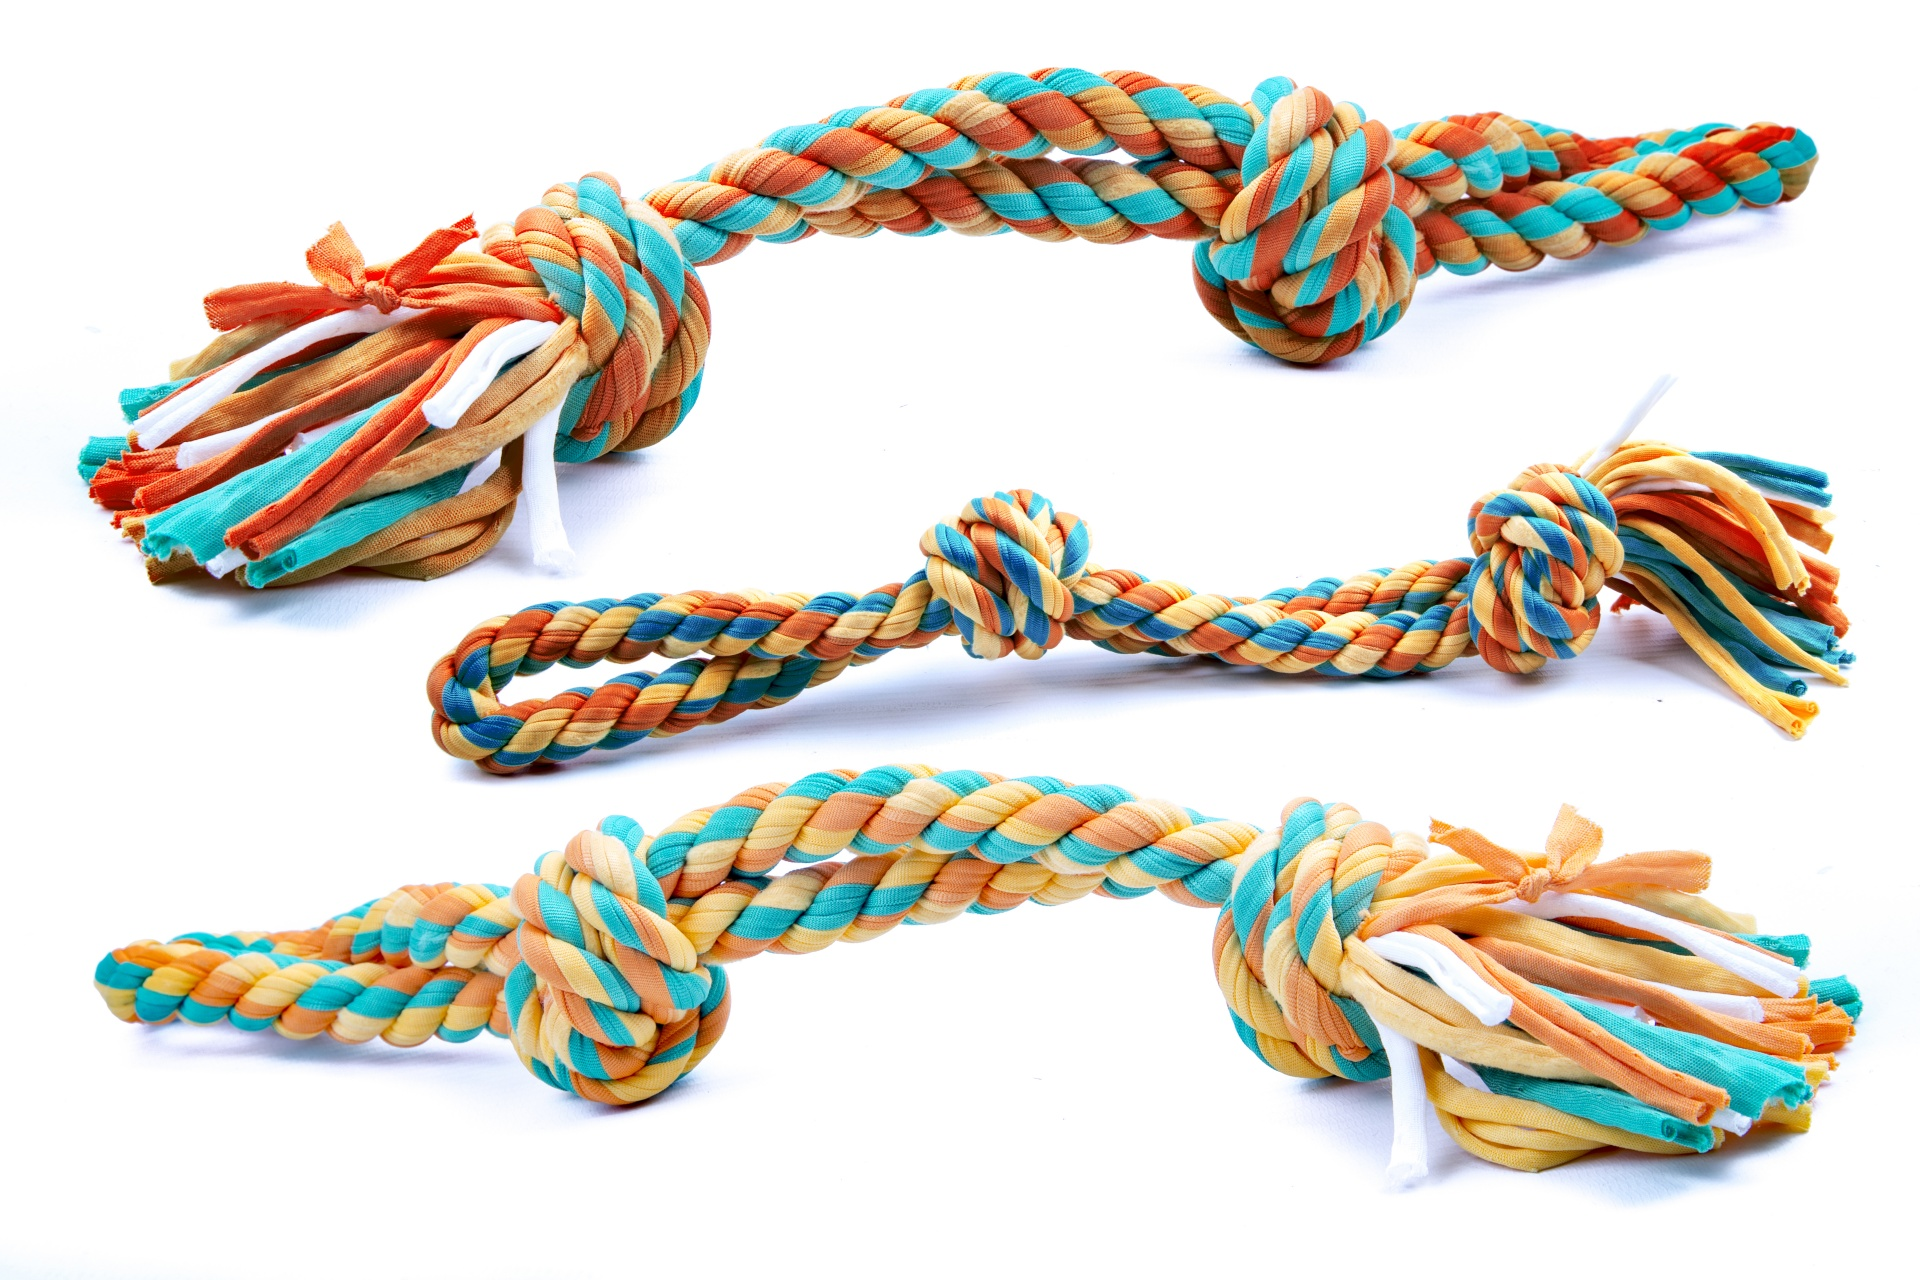 DIY: Make a Braided Dog Rope from your Old T-Shirts